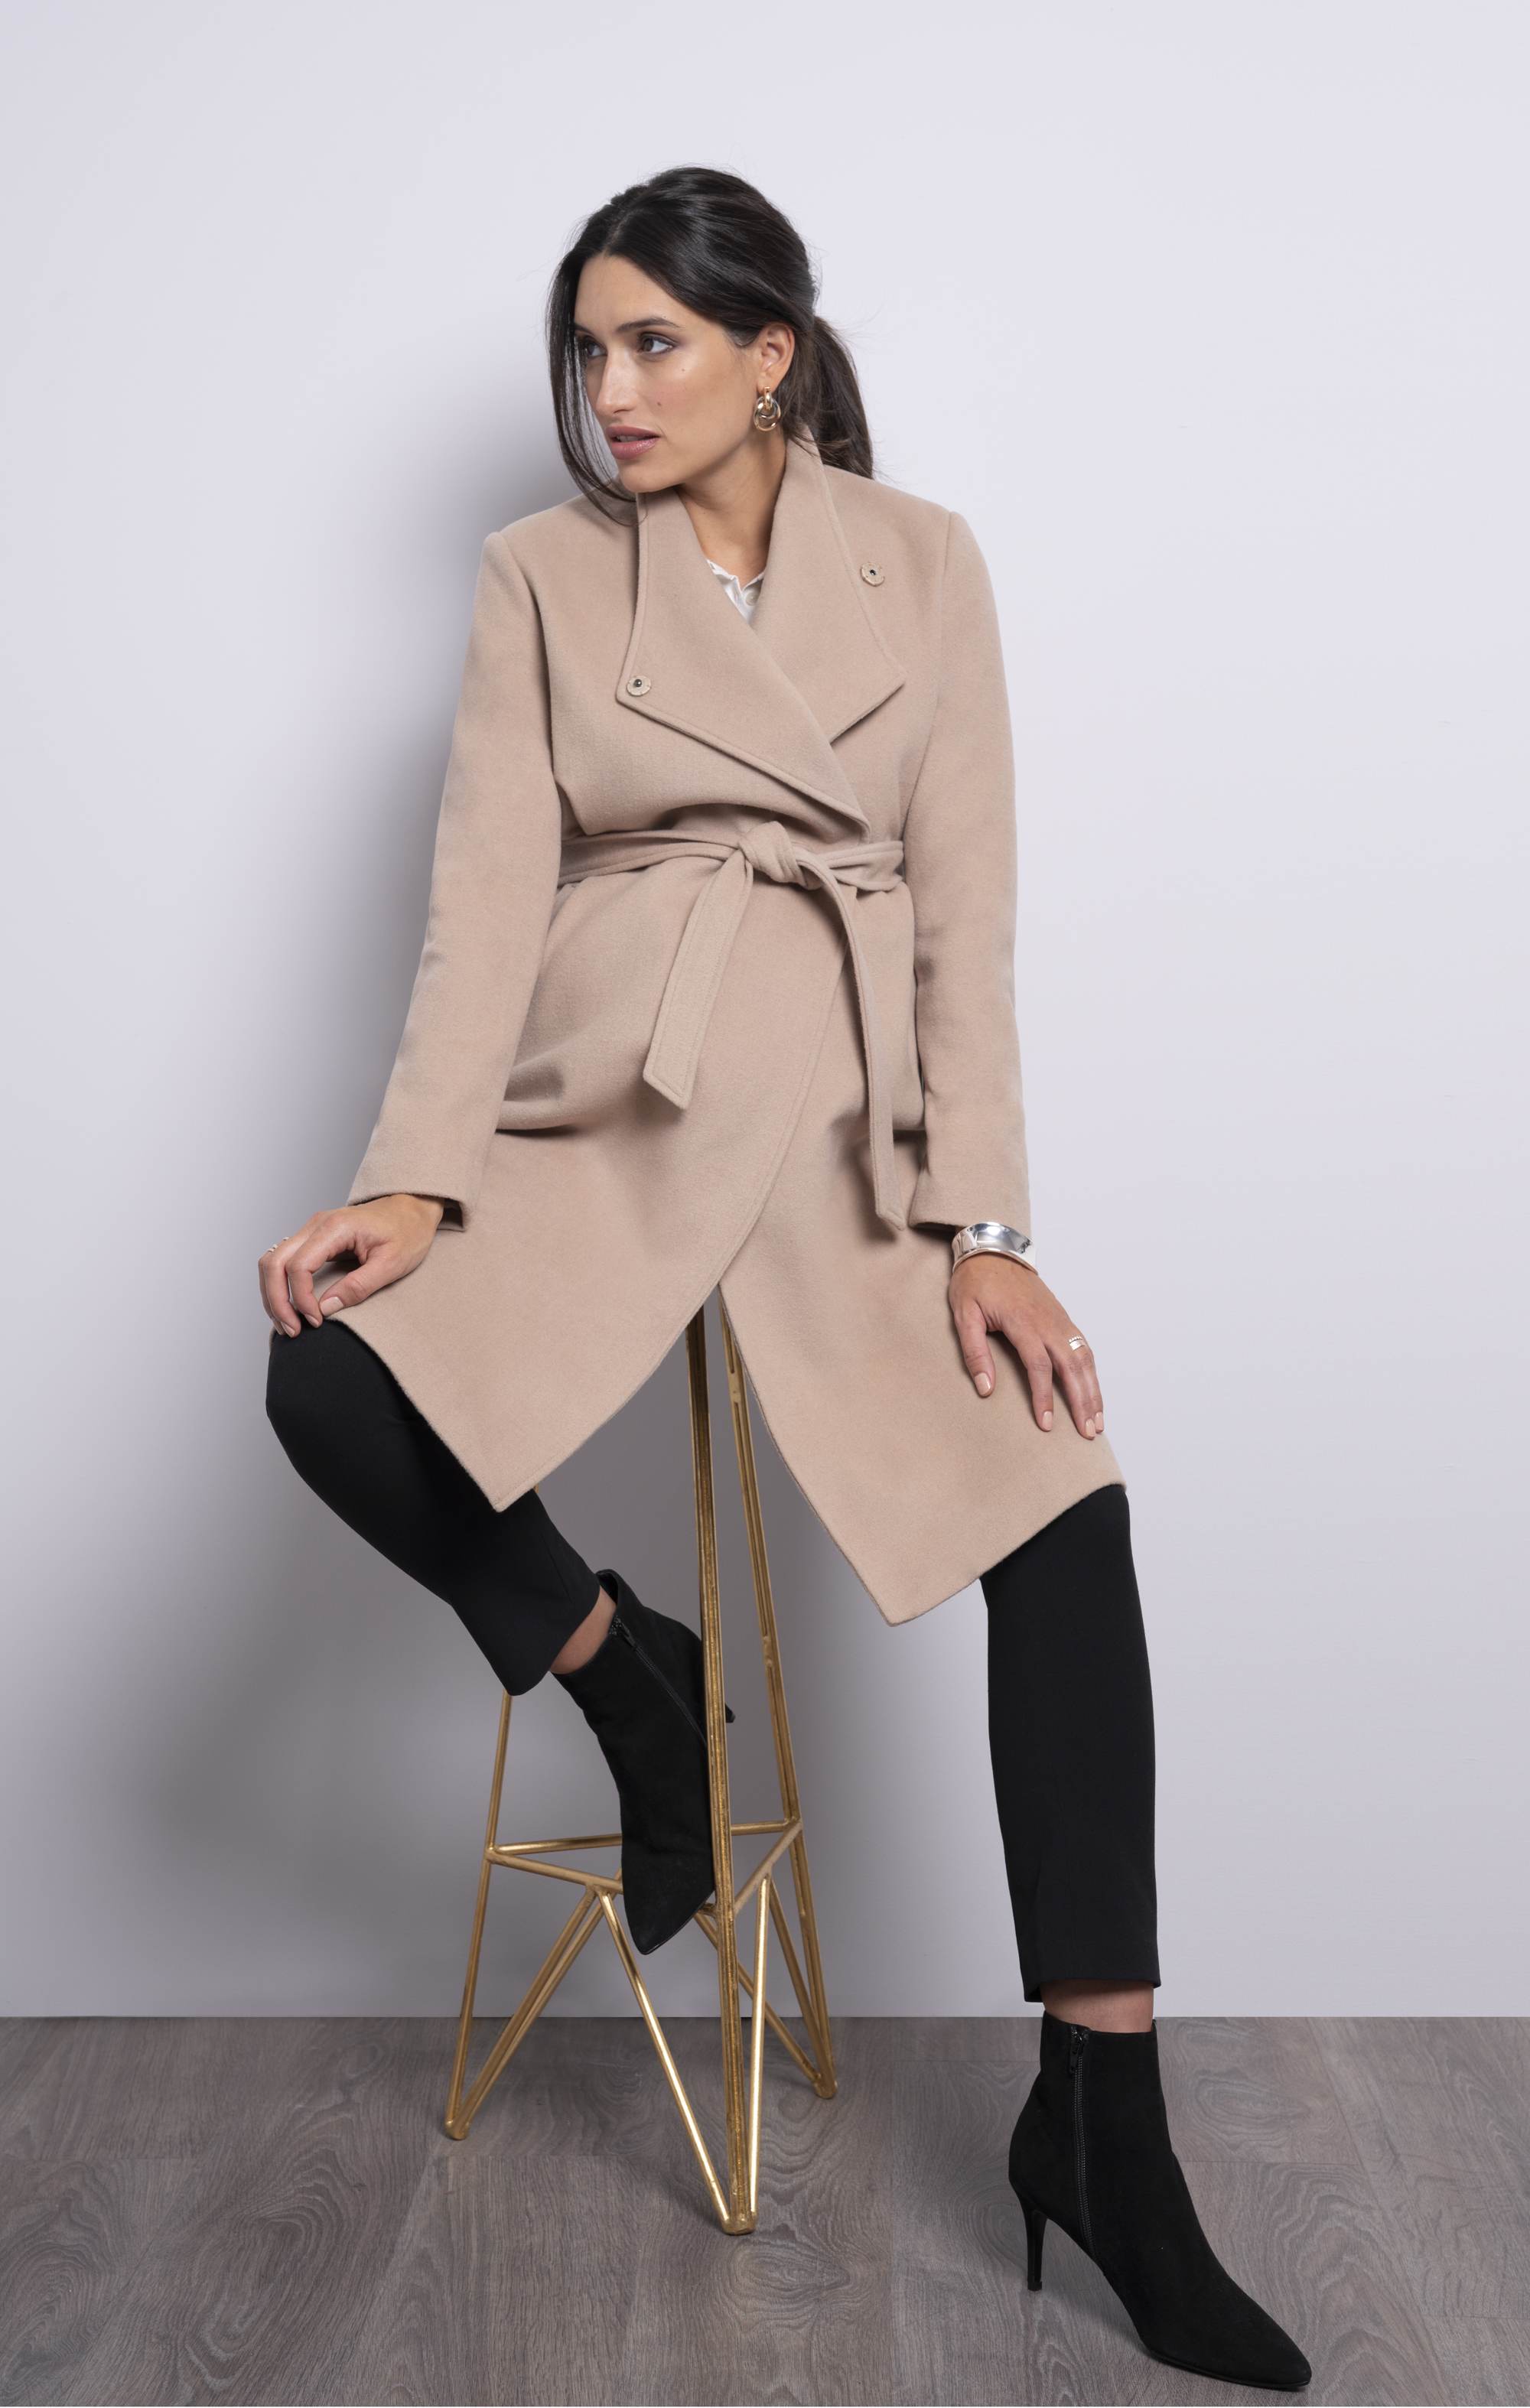 Seraphine Wool Camel Maternity Coat; Cropped Black Maternity Trousers